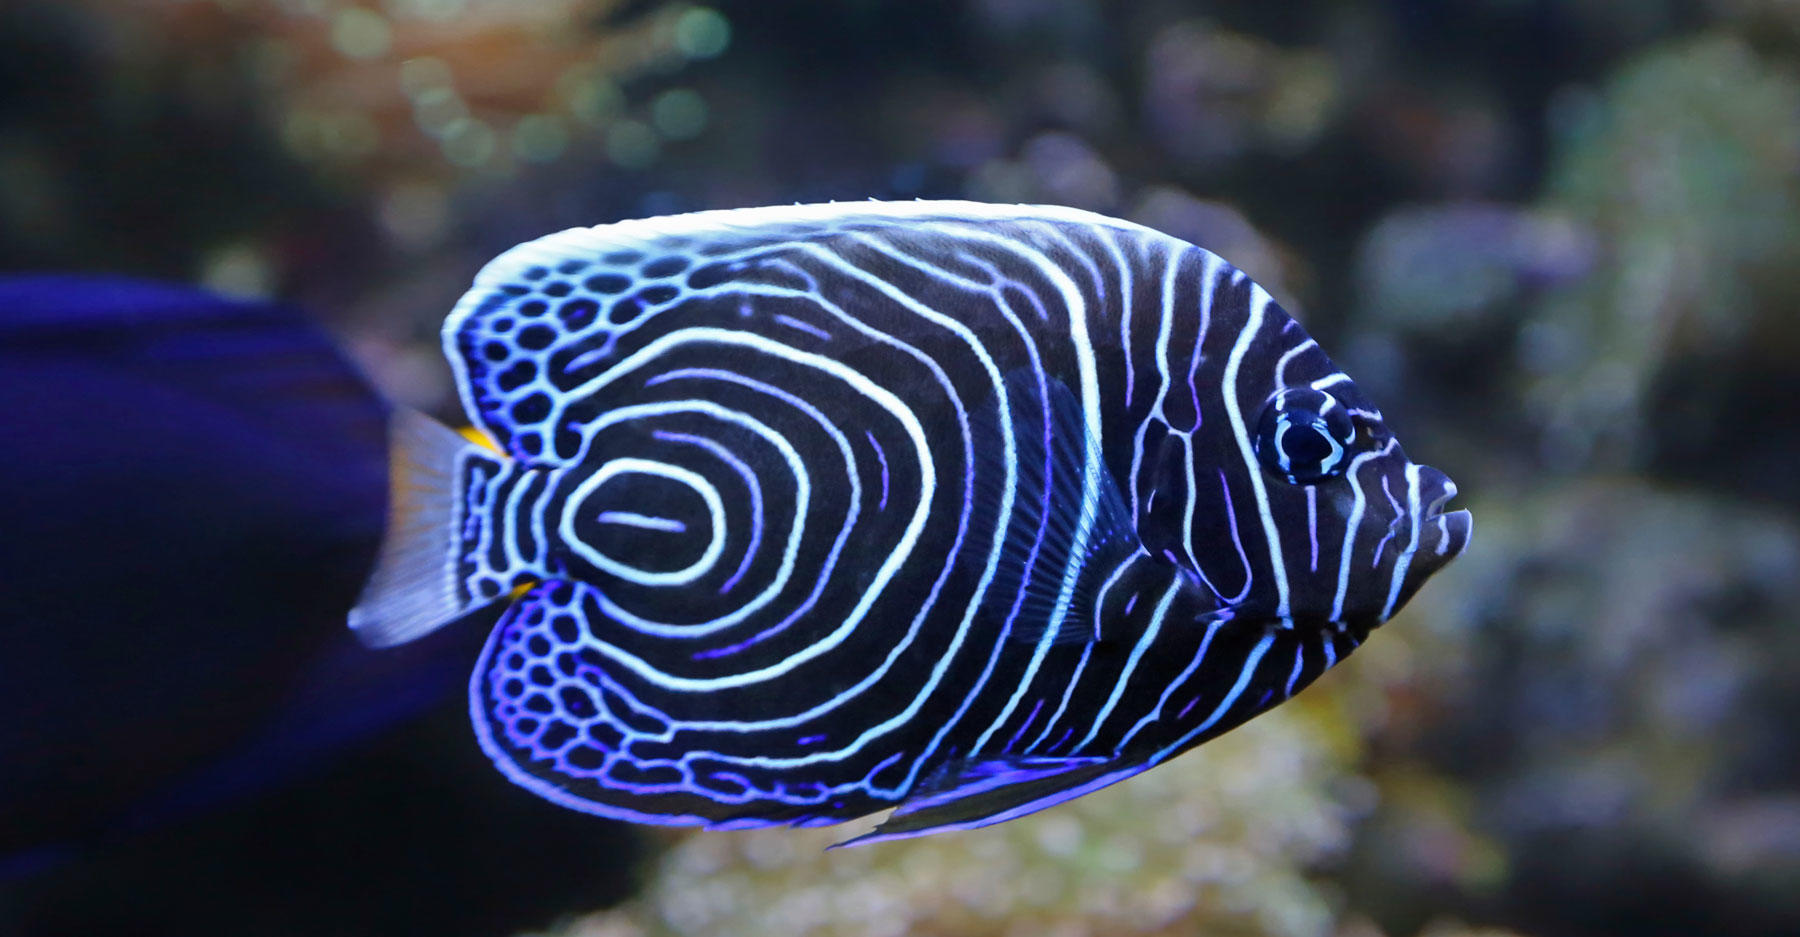 Close-up view of a Juvenile Emperor angelfish